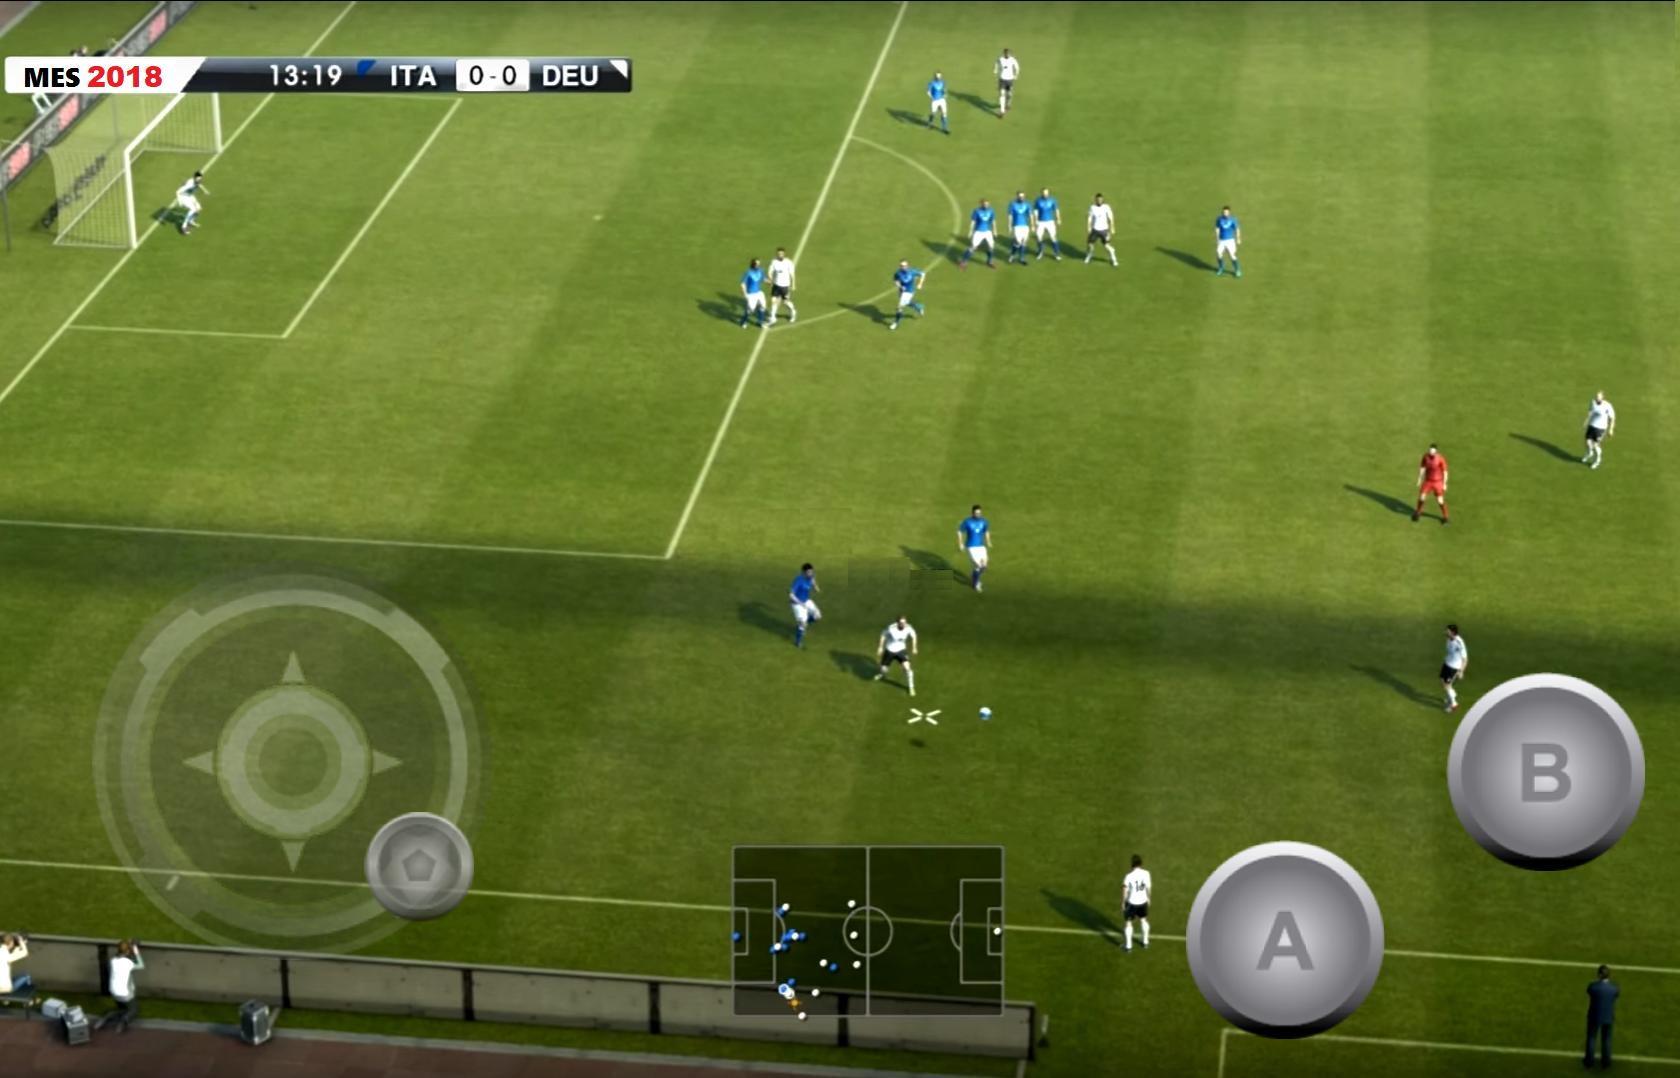 Mobile League Soccer 2018 for Android - APK Download